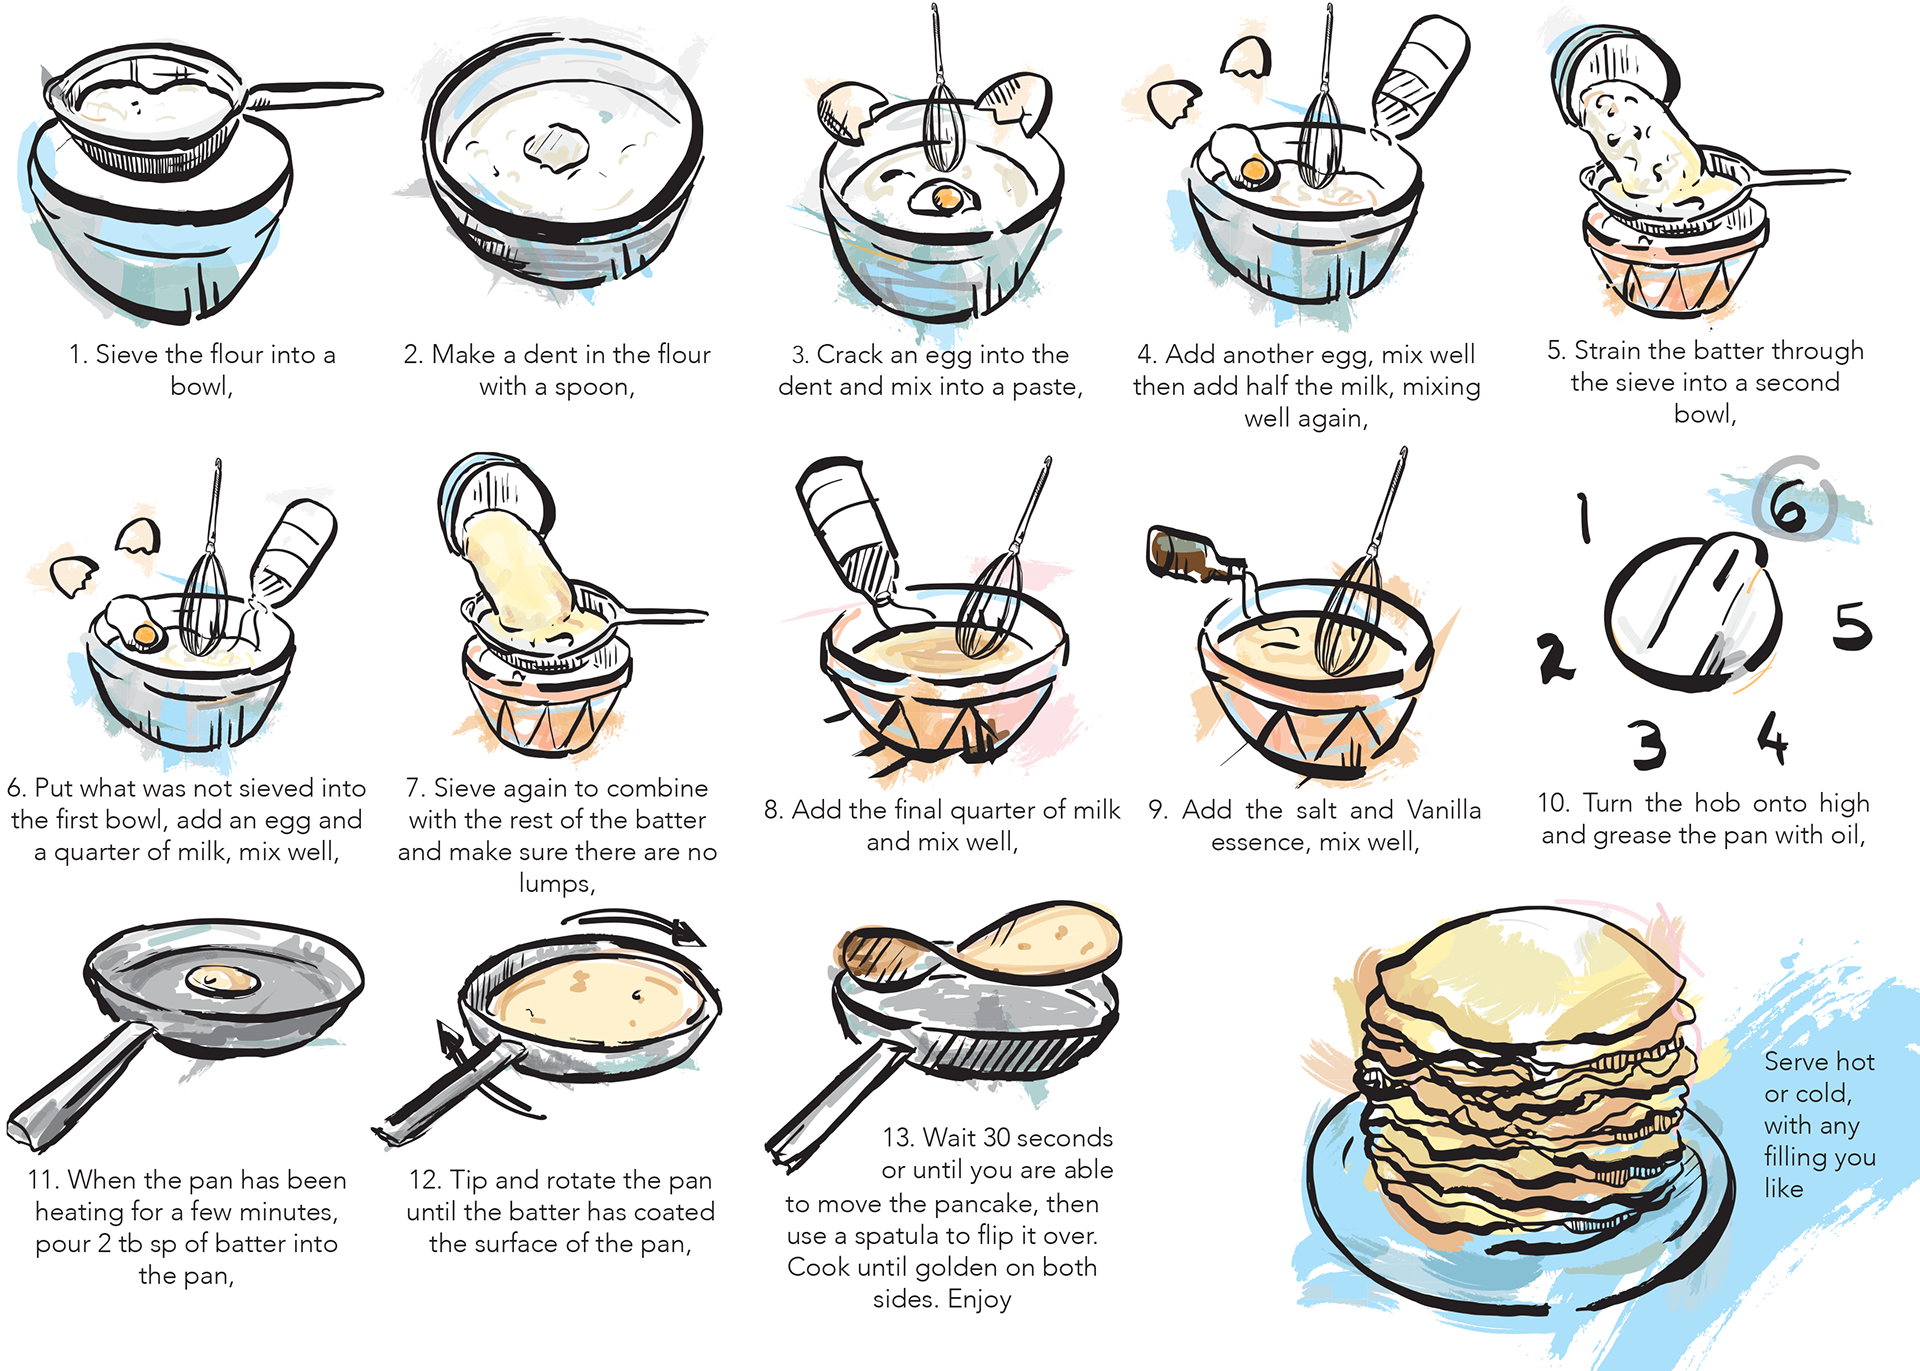 Laura chamberlain instructional leaflet how to make pancakes university course practical task to design an instructional leaflet for how to make pancakes when folded the ingredients list rests over the right hand ccuart Choice Image